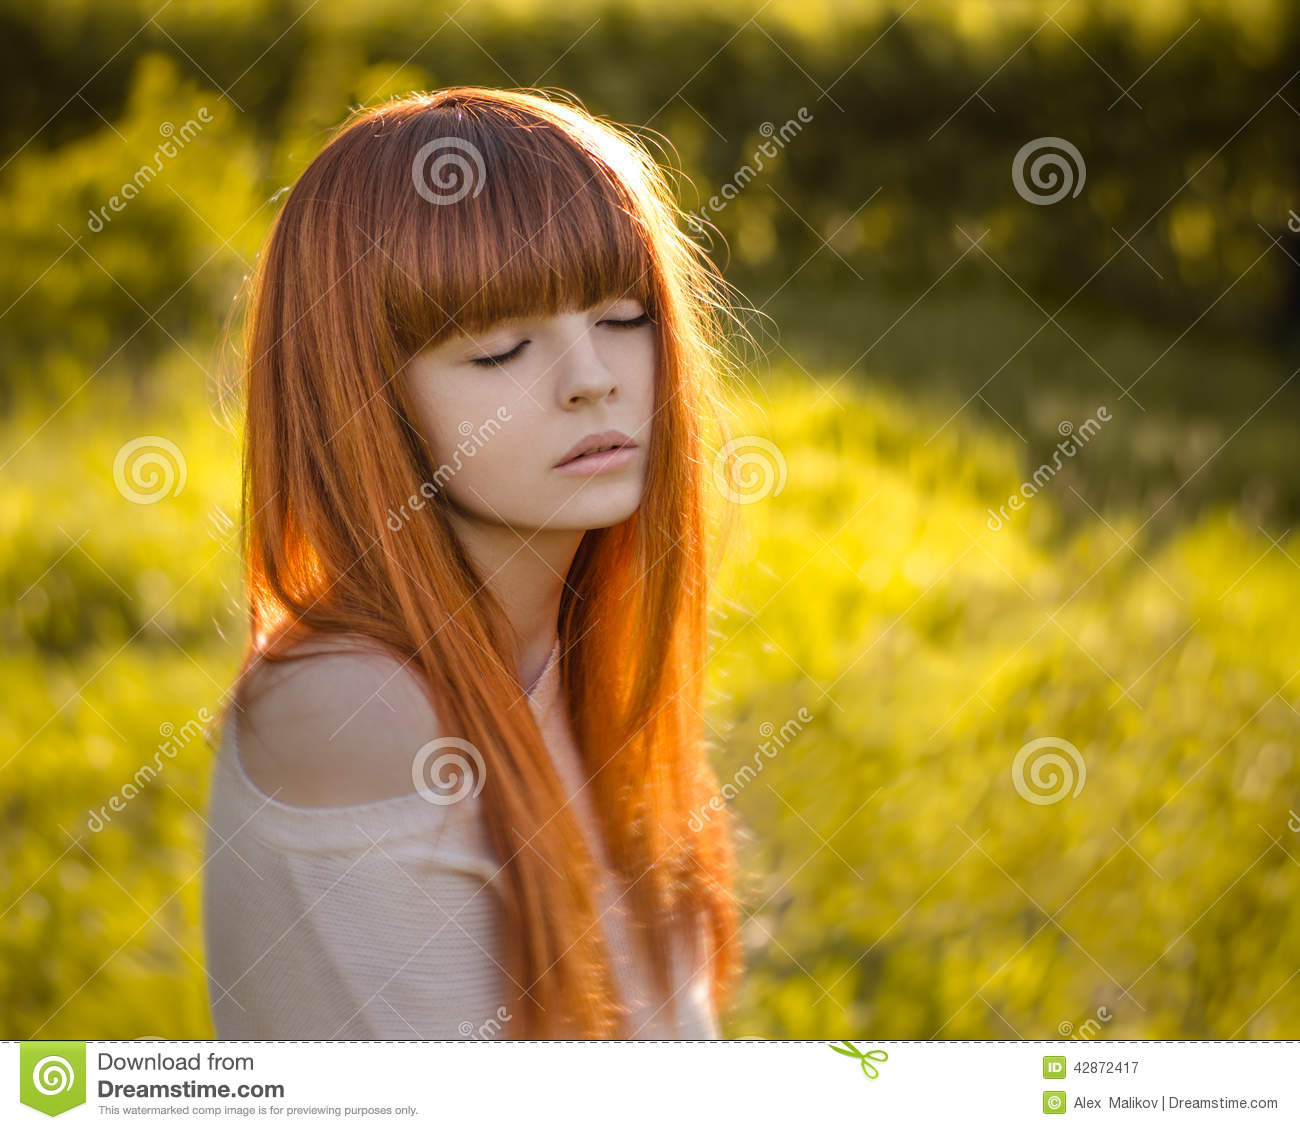 Girl with red hair in the forest